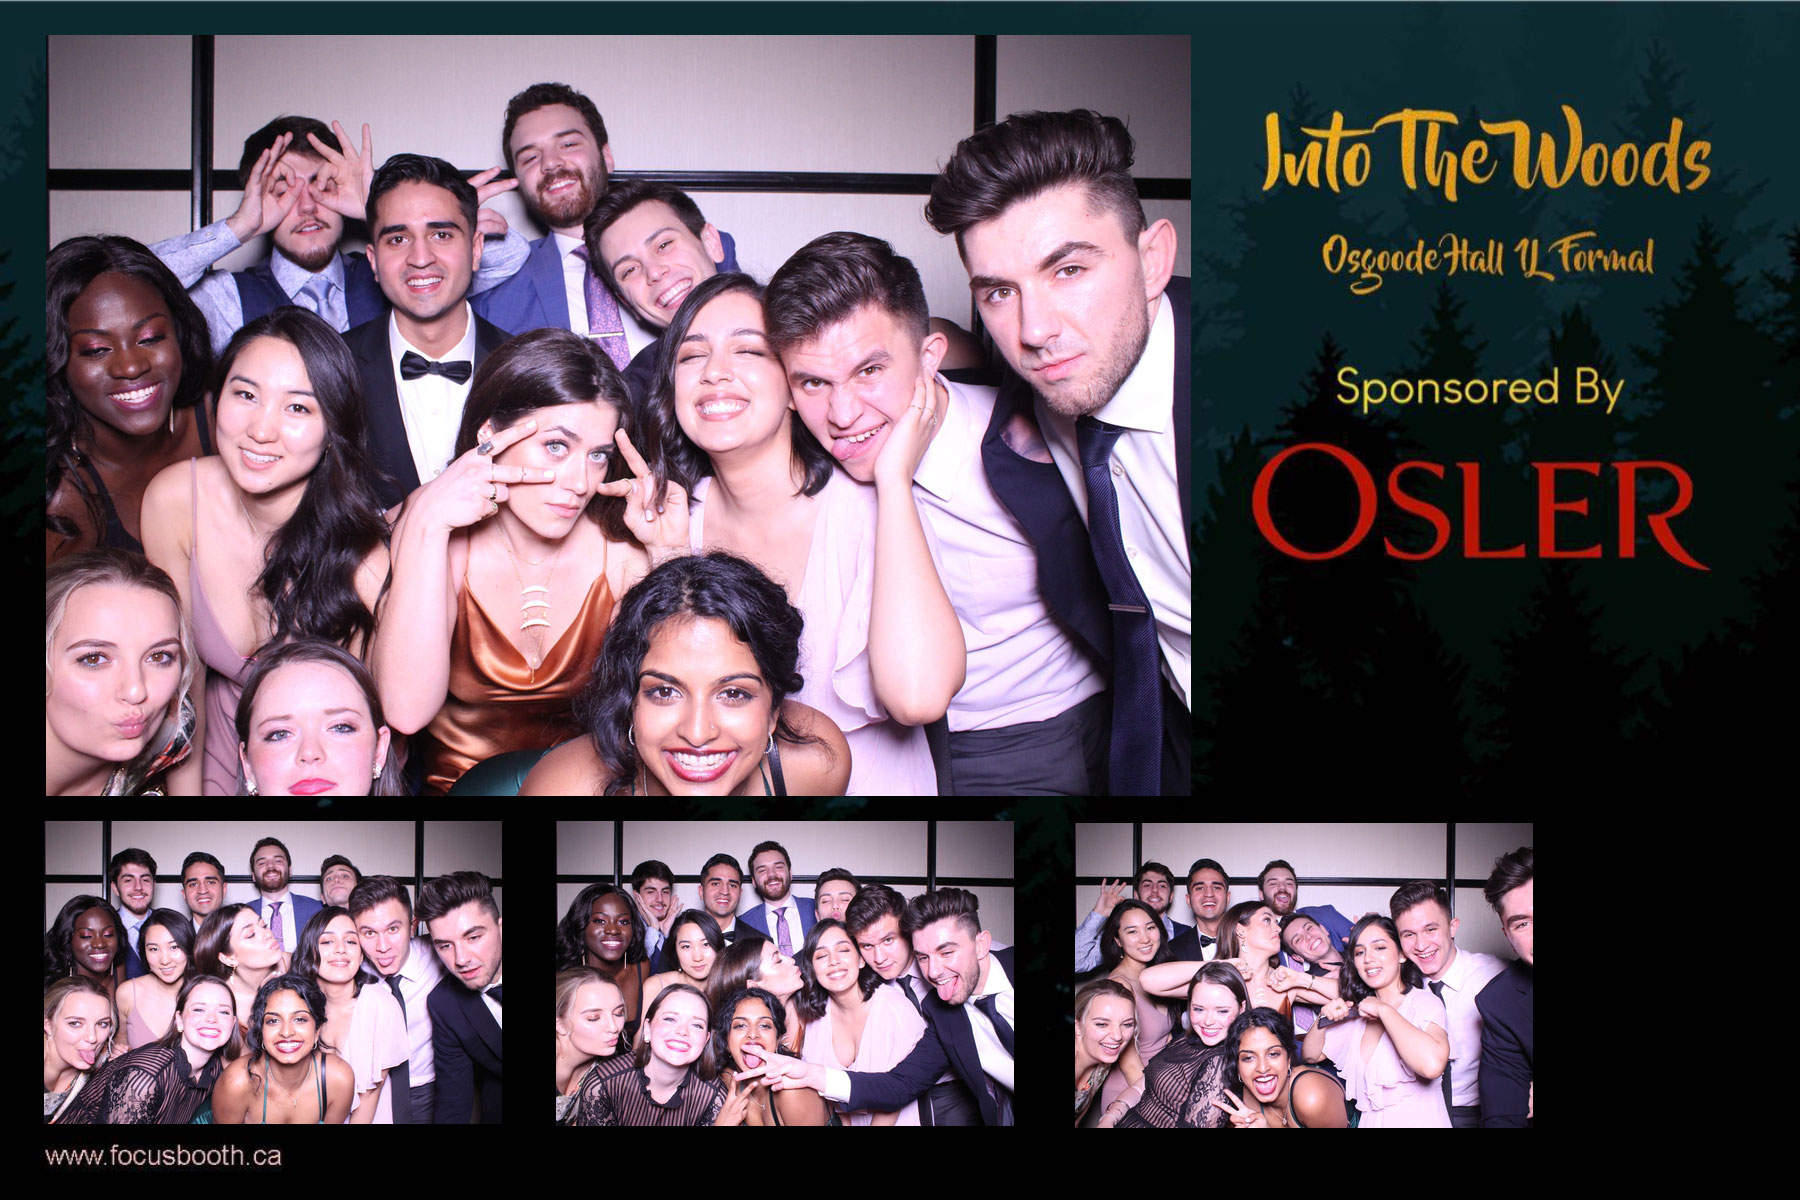 toronto school formal event photo booth